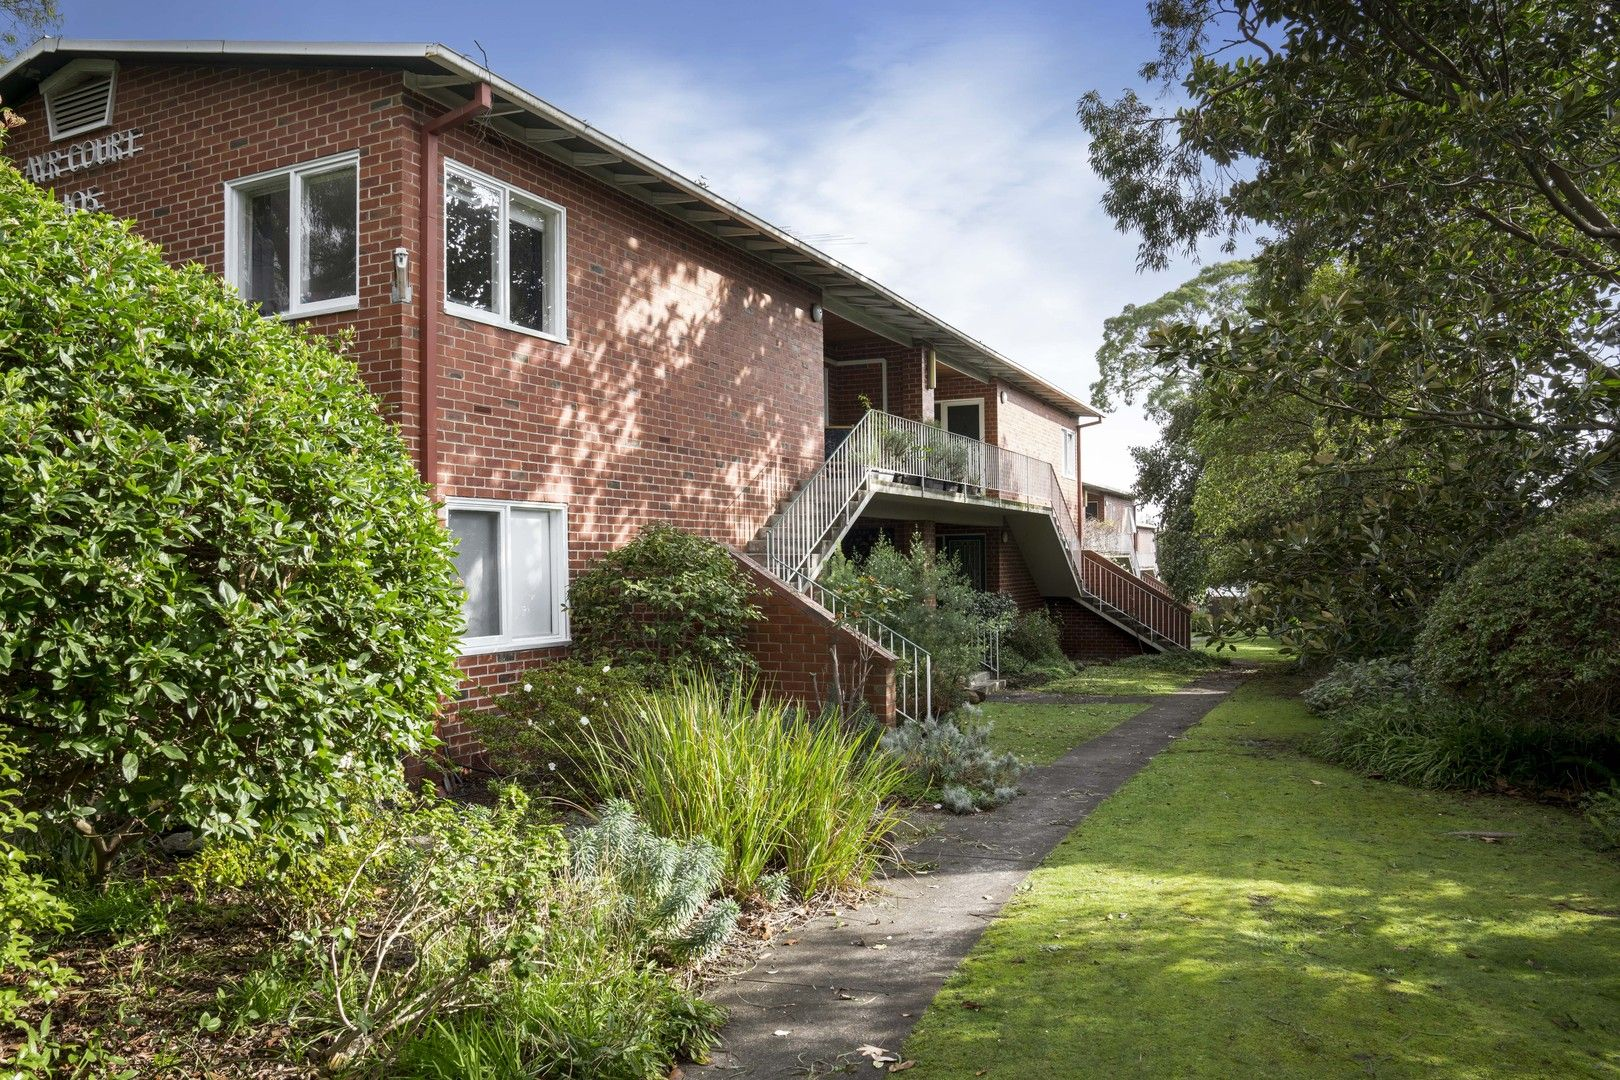 6/105 Wattle Valley Road, Camberwell VIC 3124, Image 0